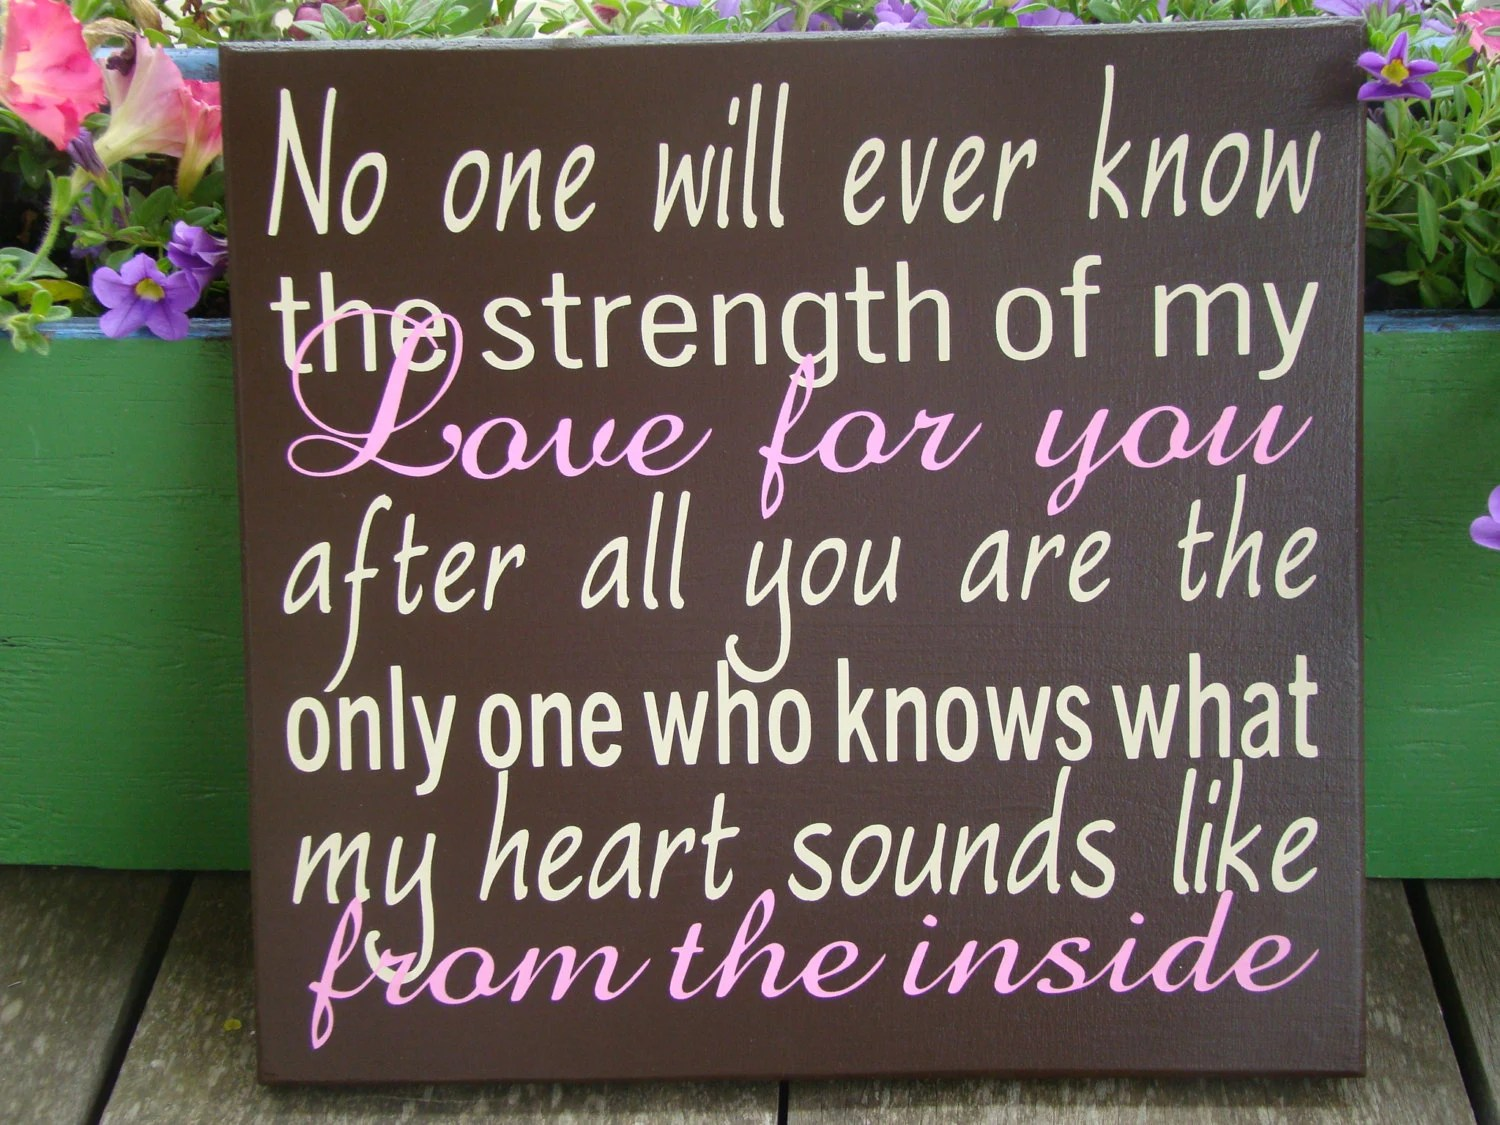 No One Will Ever Know the Strength of my Love Custom Wood Sign for Baby Girl or Boy Nursery Vinyl Lettering